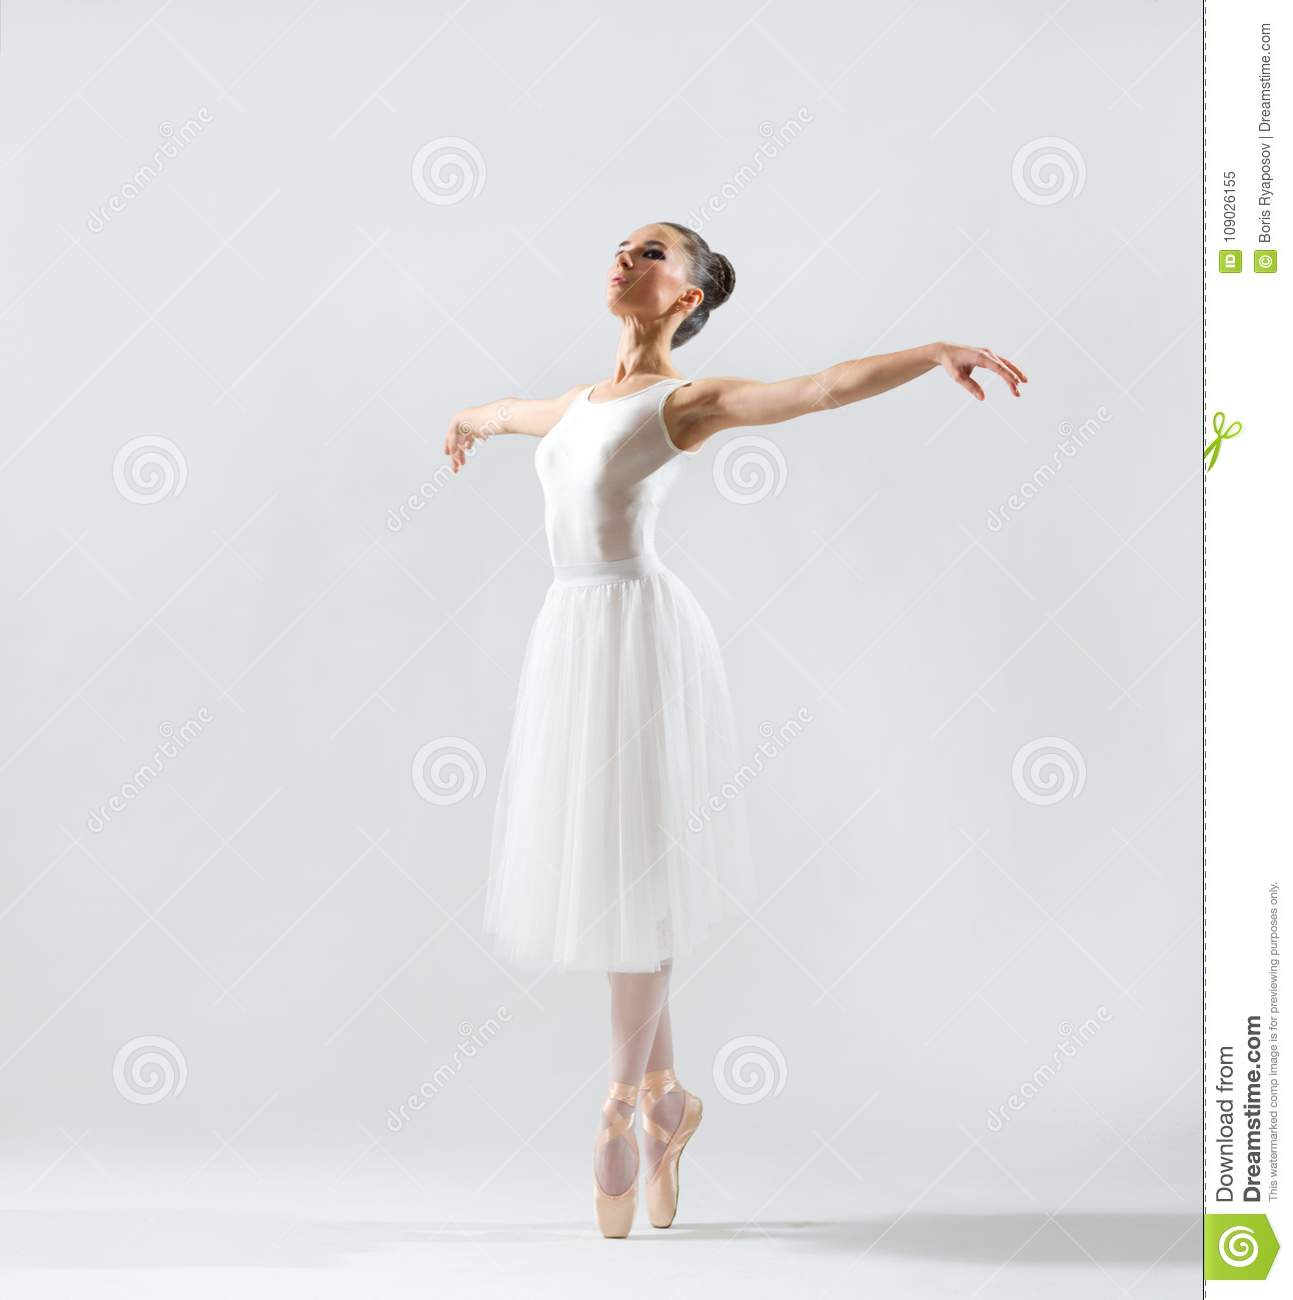 Ballerine sur la version grise